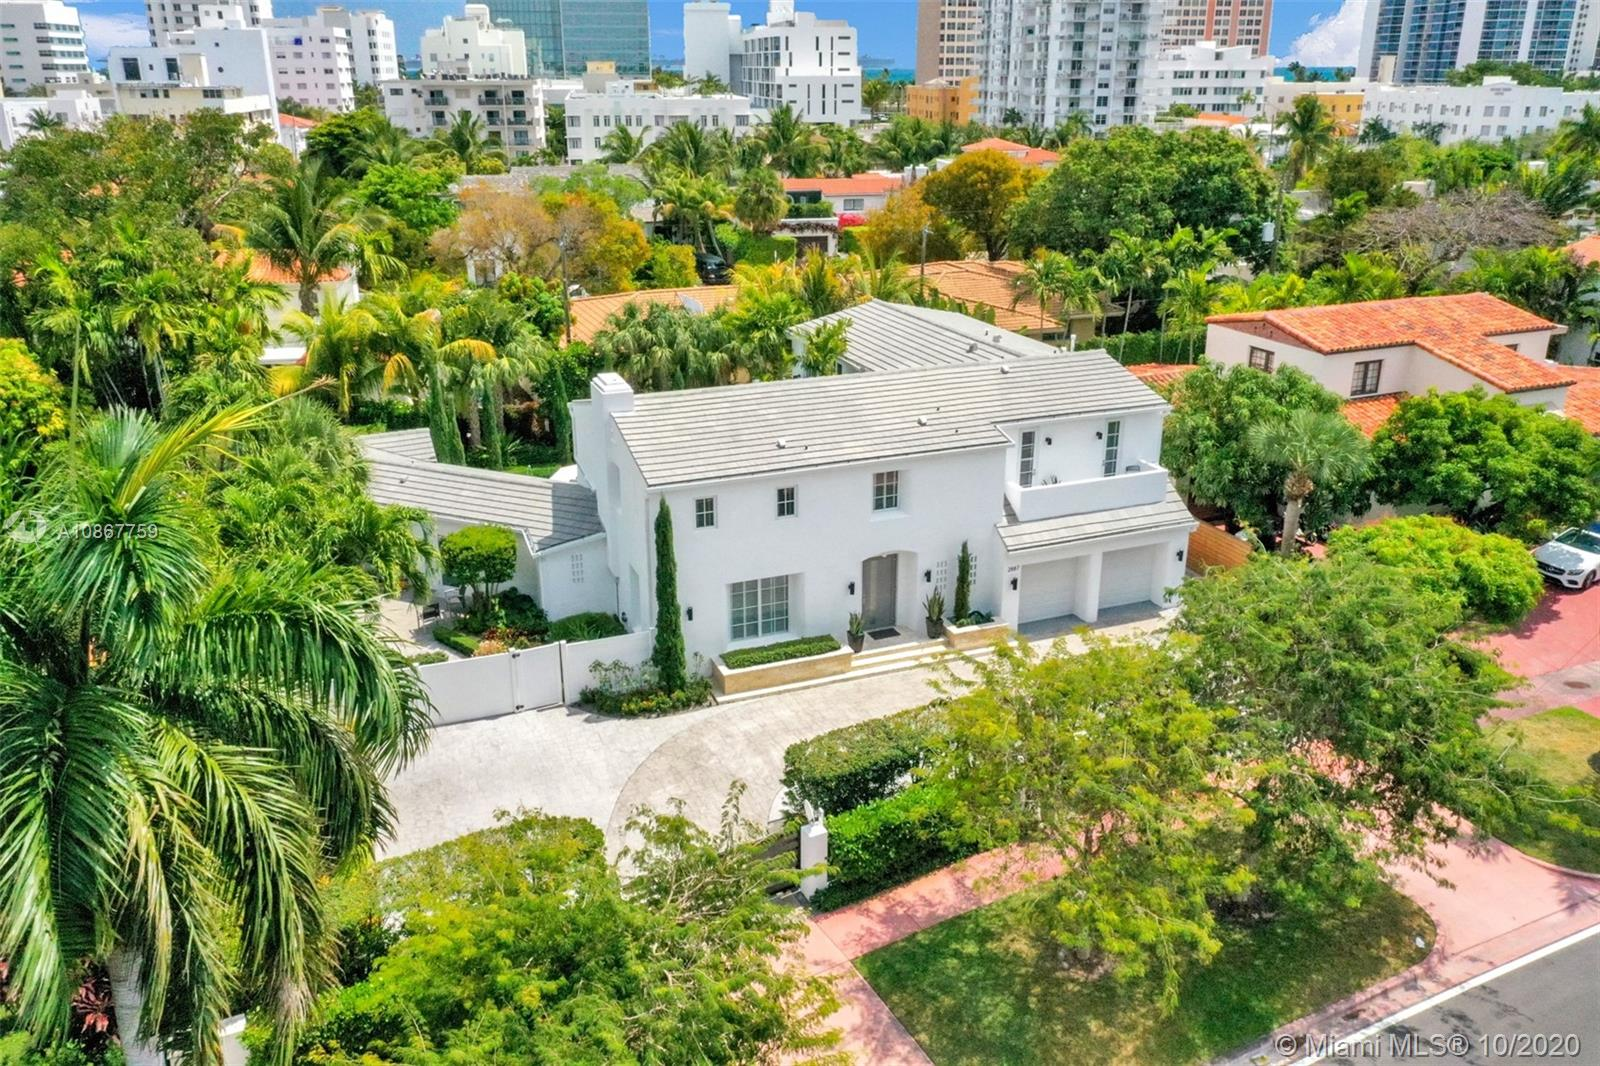 Details for 2887 Pine Tree Dr, Miami Beach, FL 33140